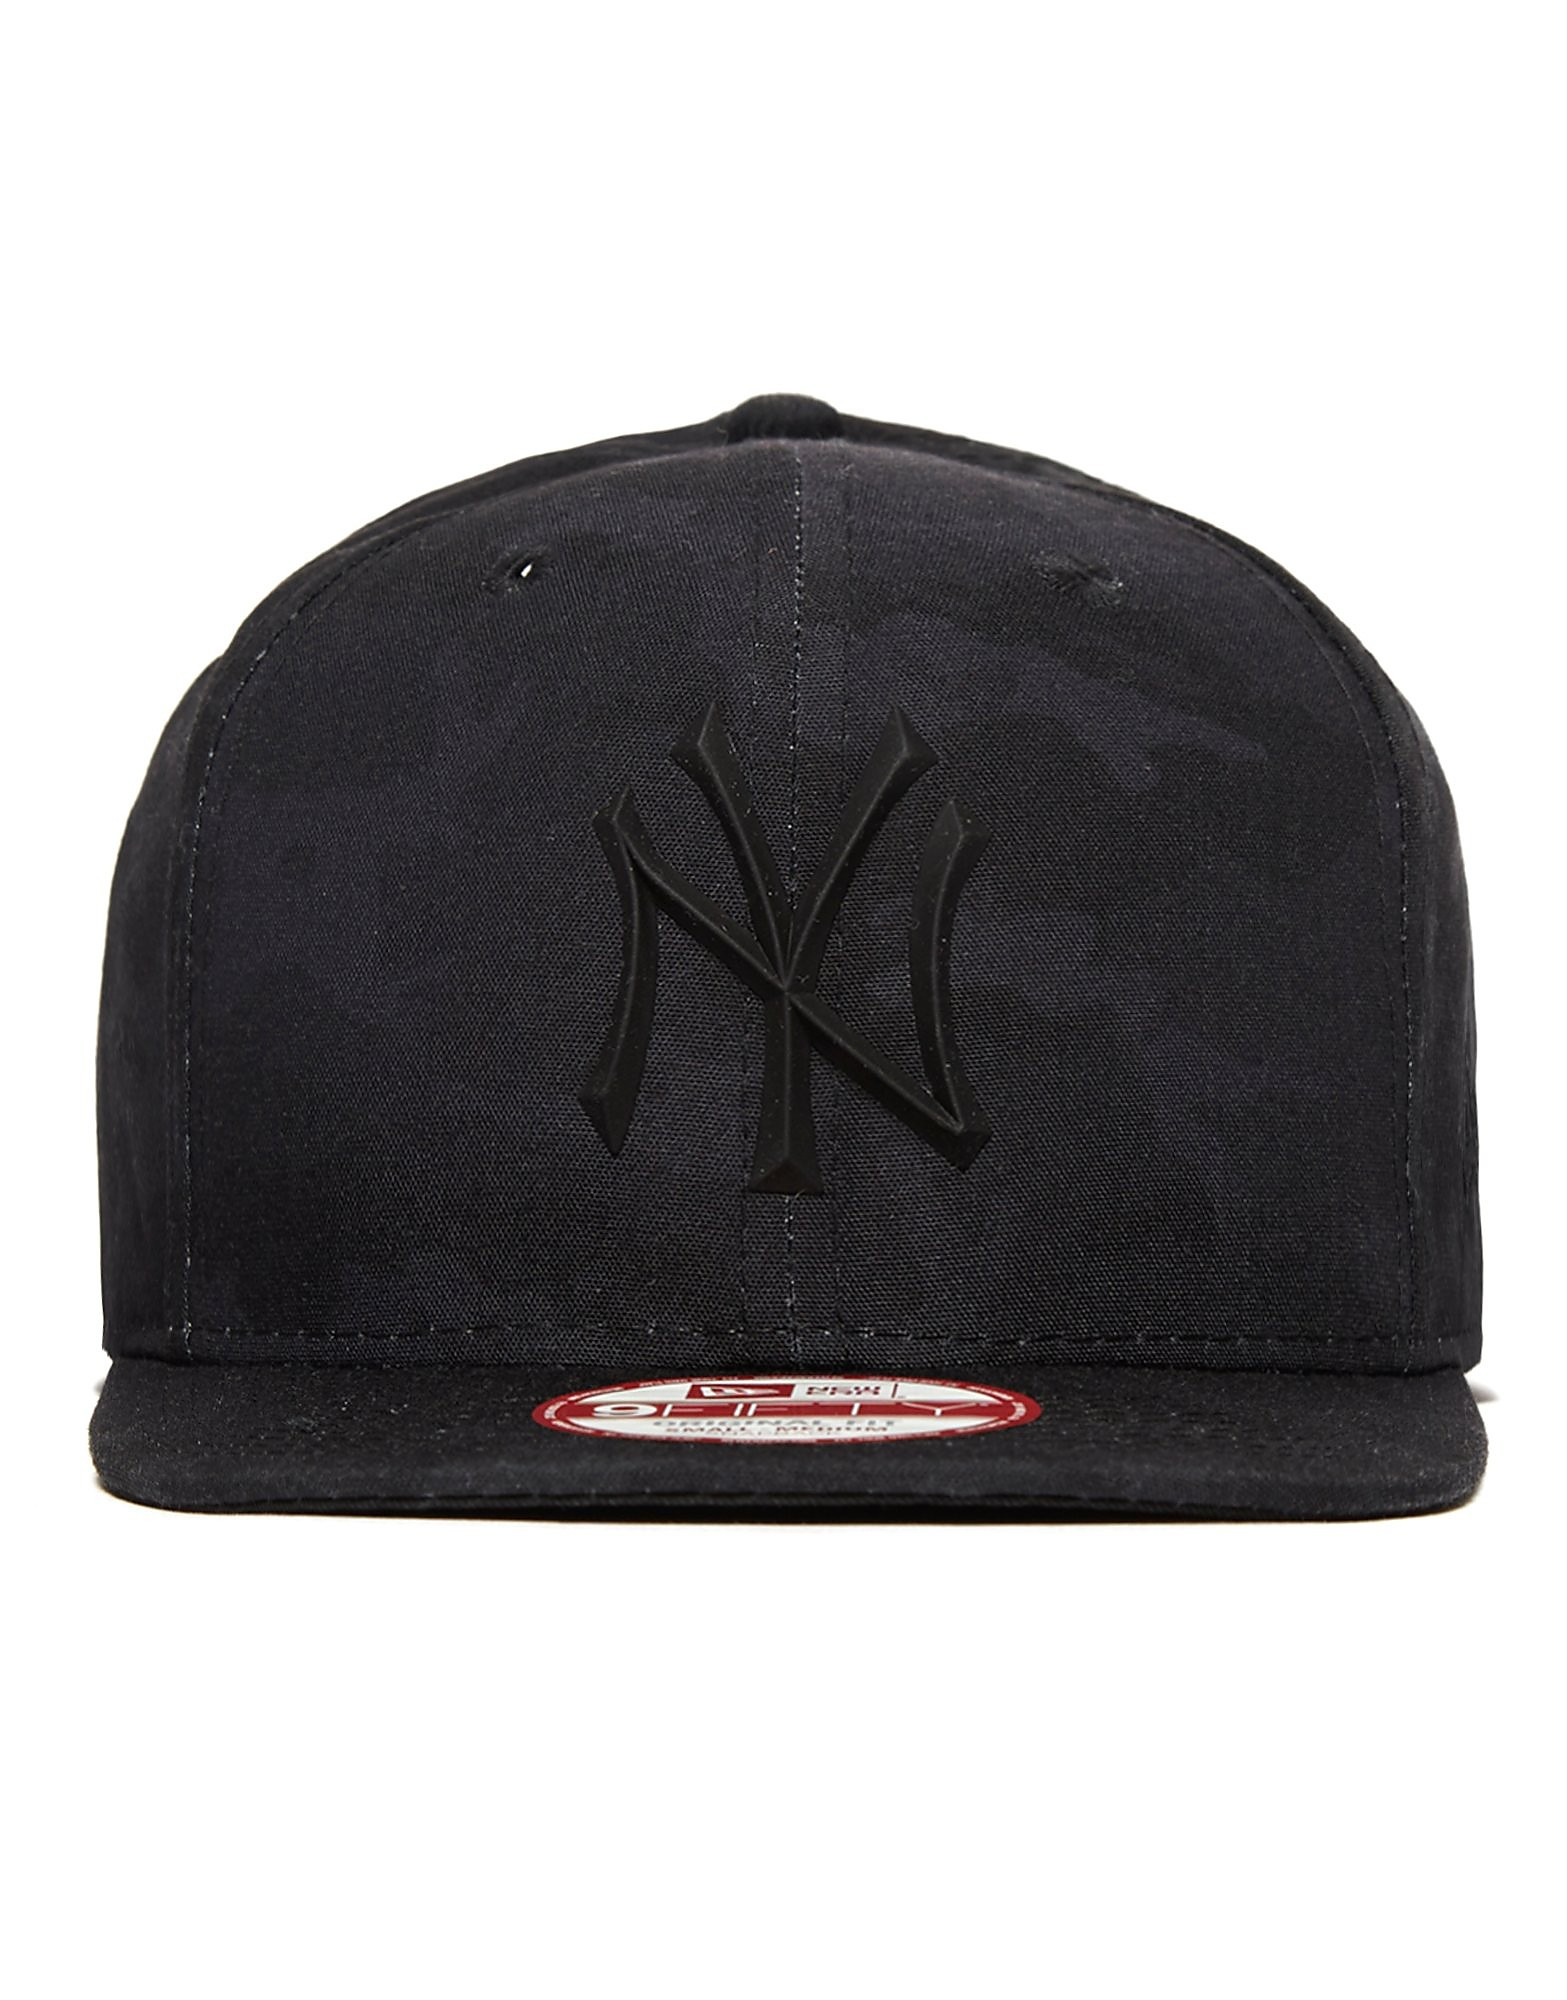 New Era MLB New York Yankees 9FIFTY Camo Snapback Cap